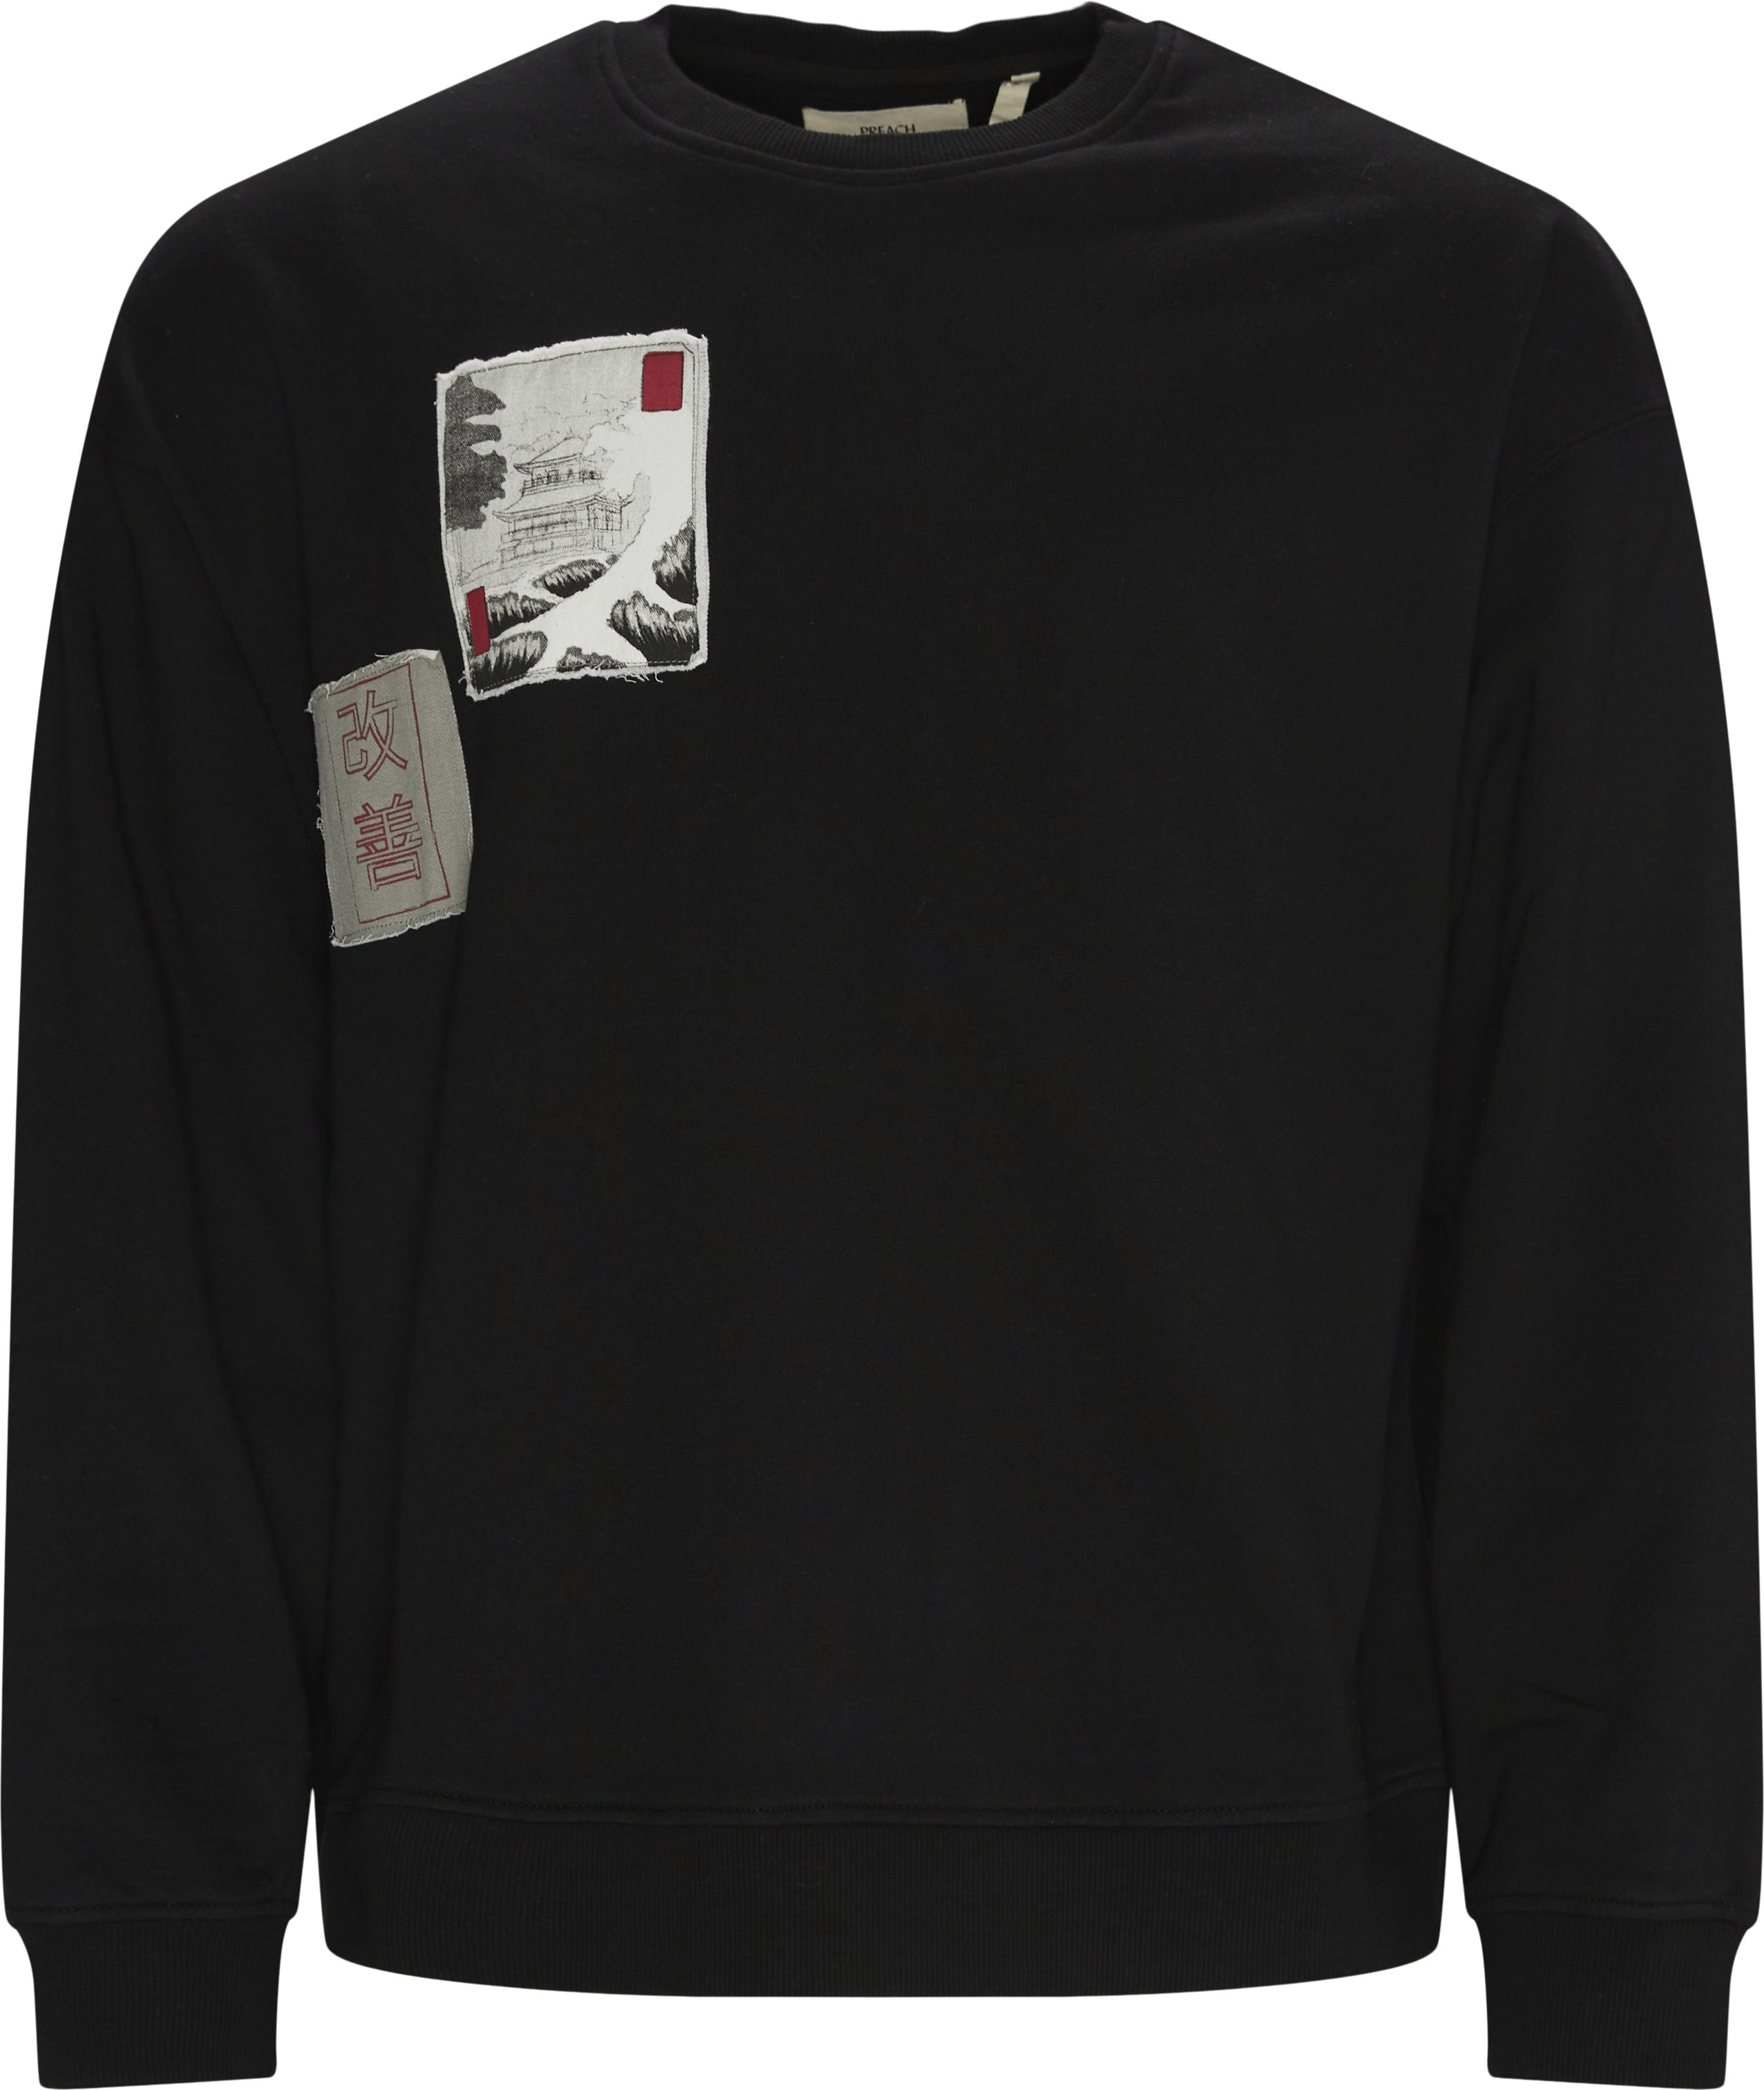 Oversized Patch Crewneck - Sweatshirts - Oversized - Sort